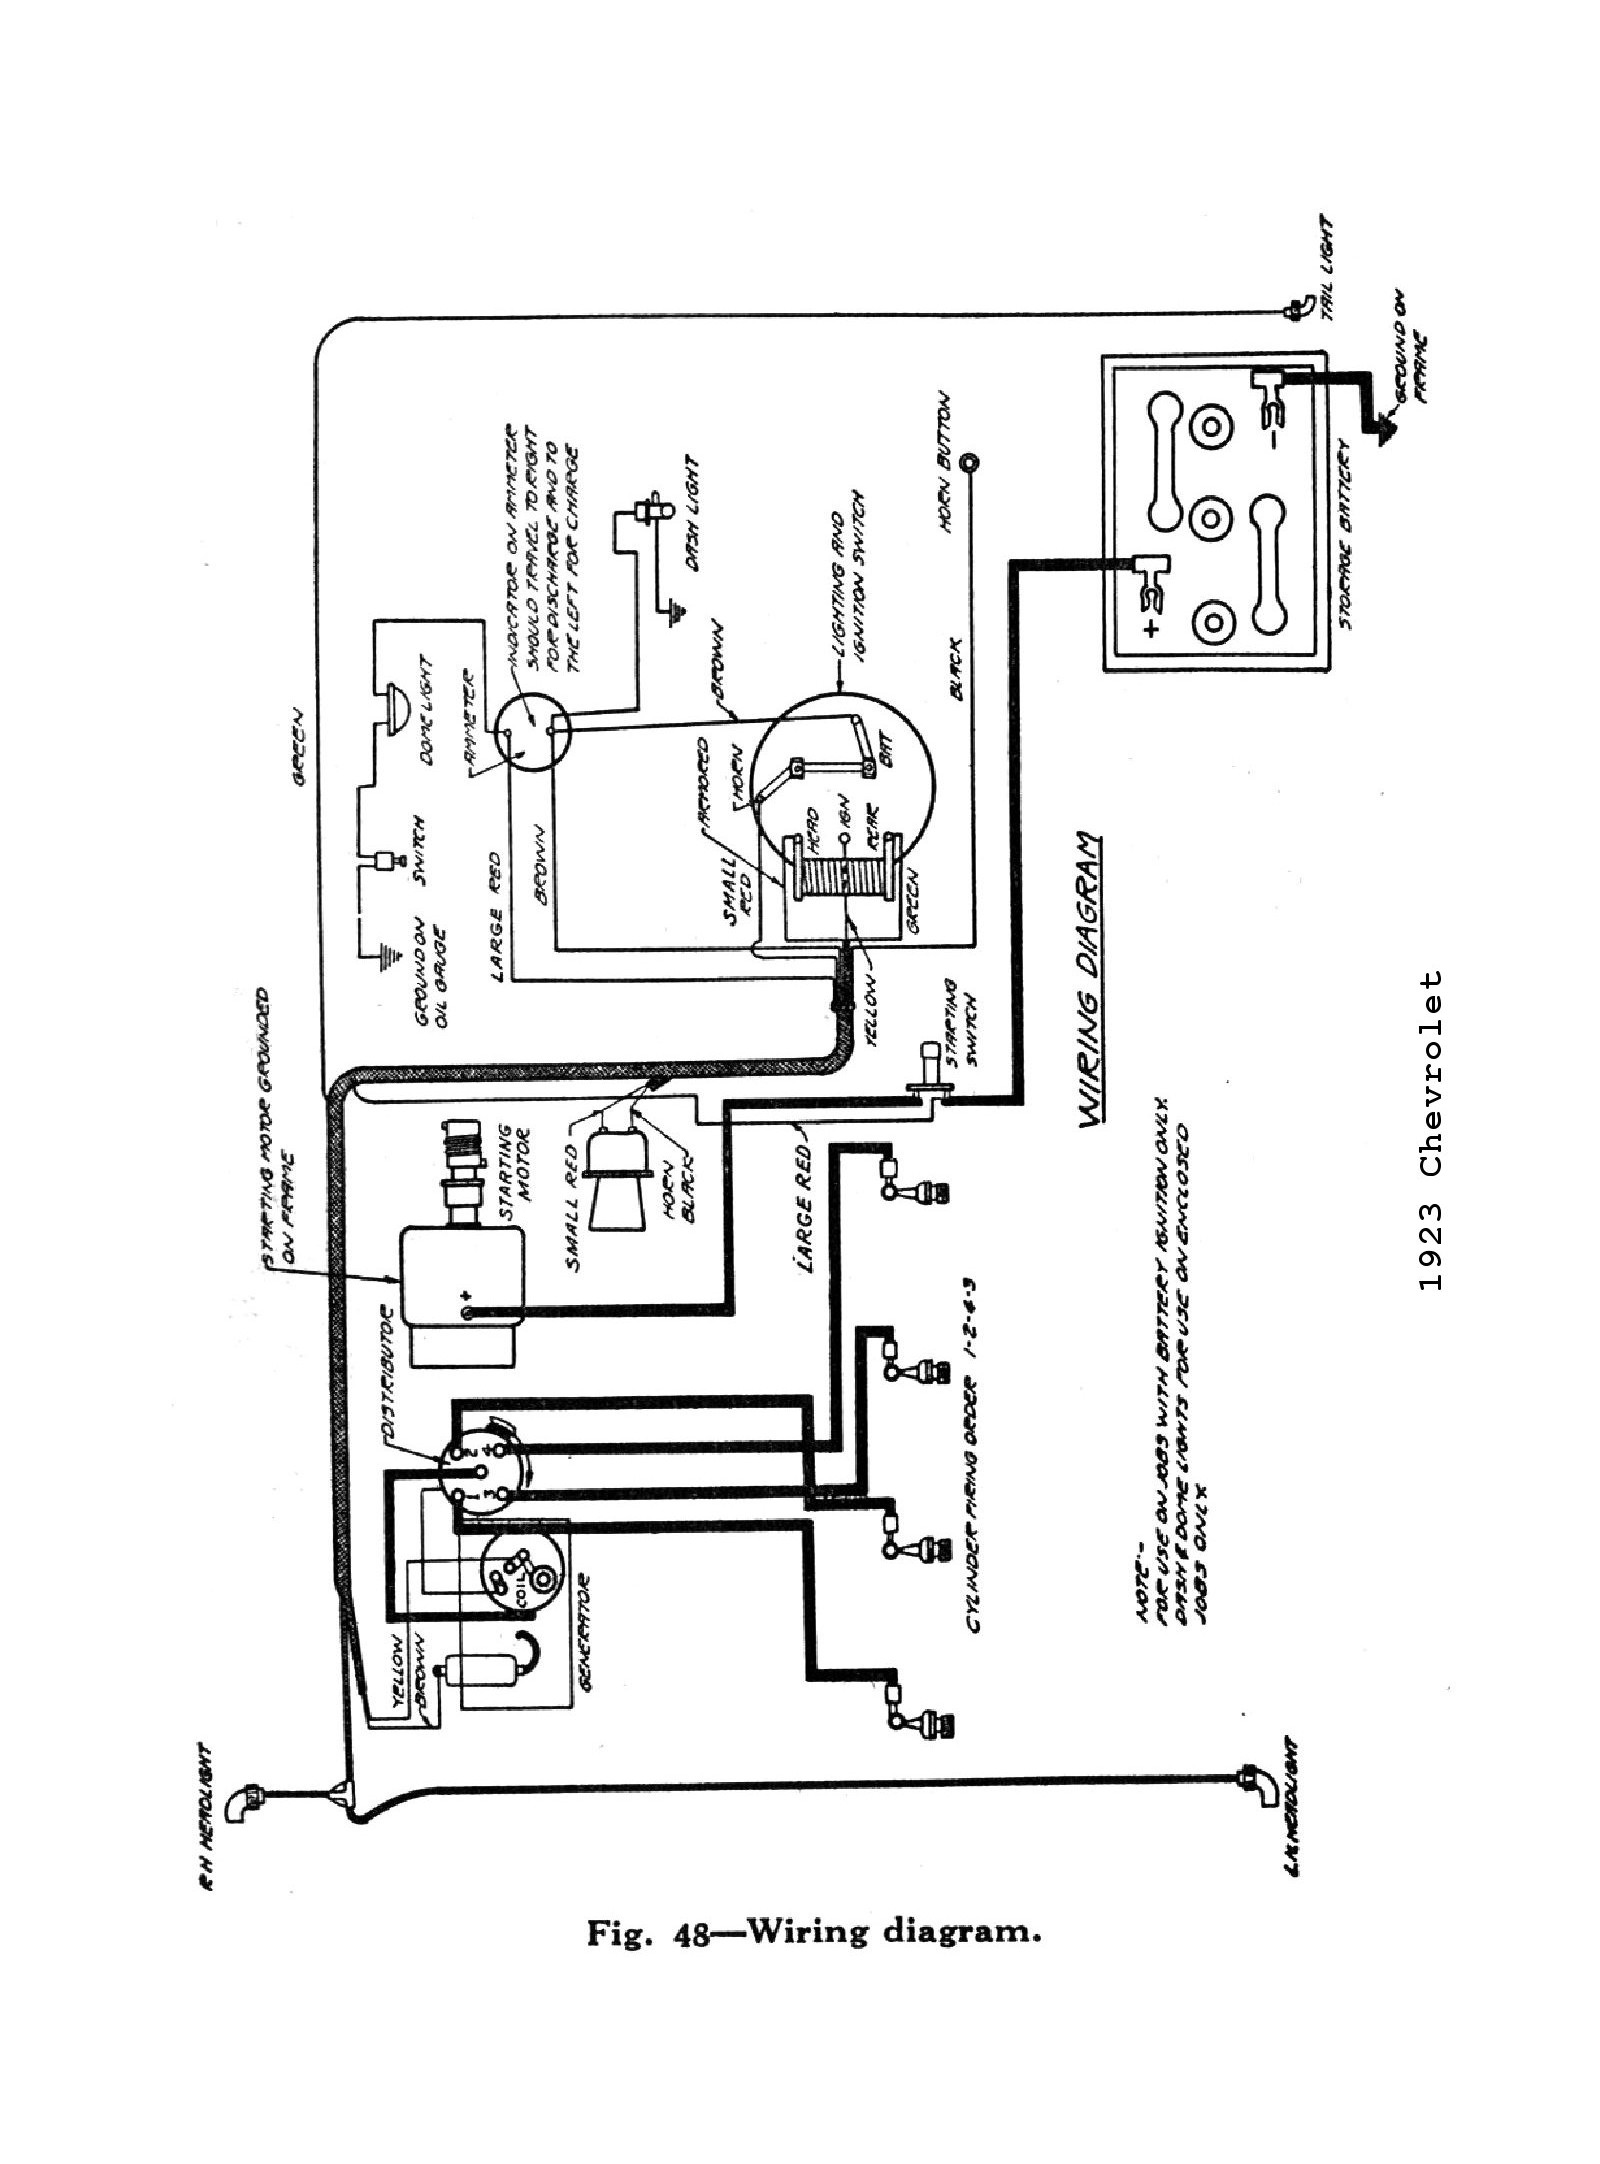 Diagram Of Buick Lucerne Engine Wiring Library. Chevy Wiring Diagrams Rh Oldcarmanualproject 1969 Buick 1998 Regal Vehicle Diagram. Buick. 1998 Buick Regal Electrical Diagrams At Scoala.co